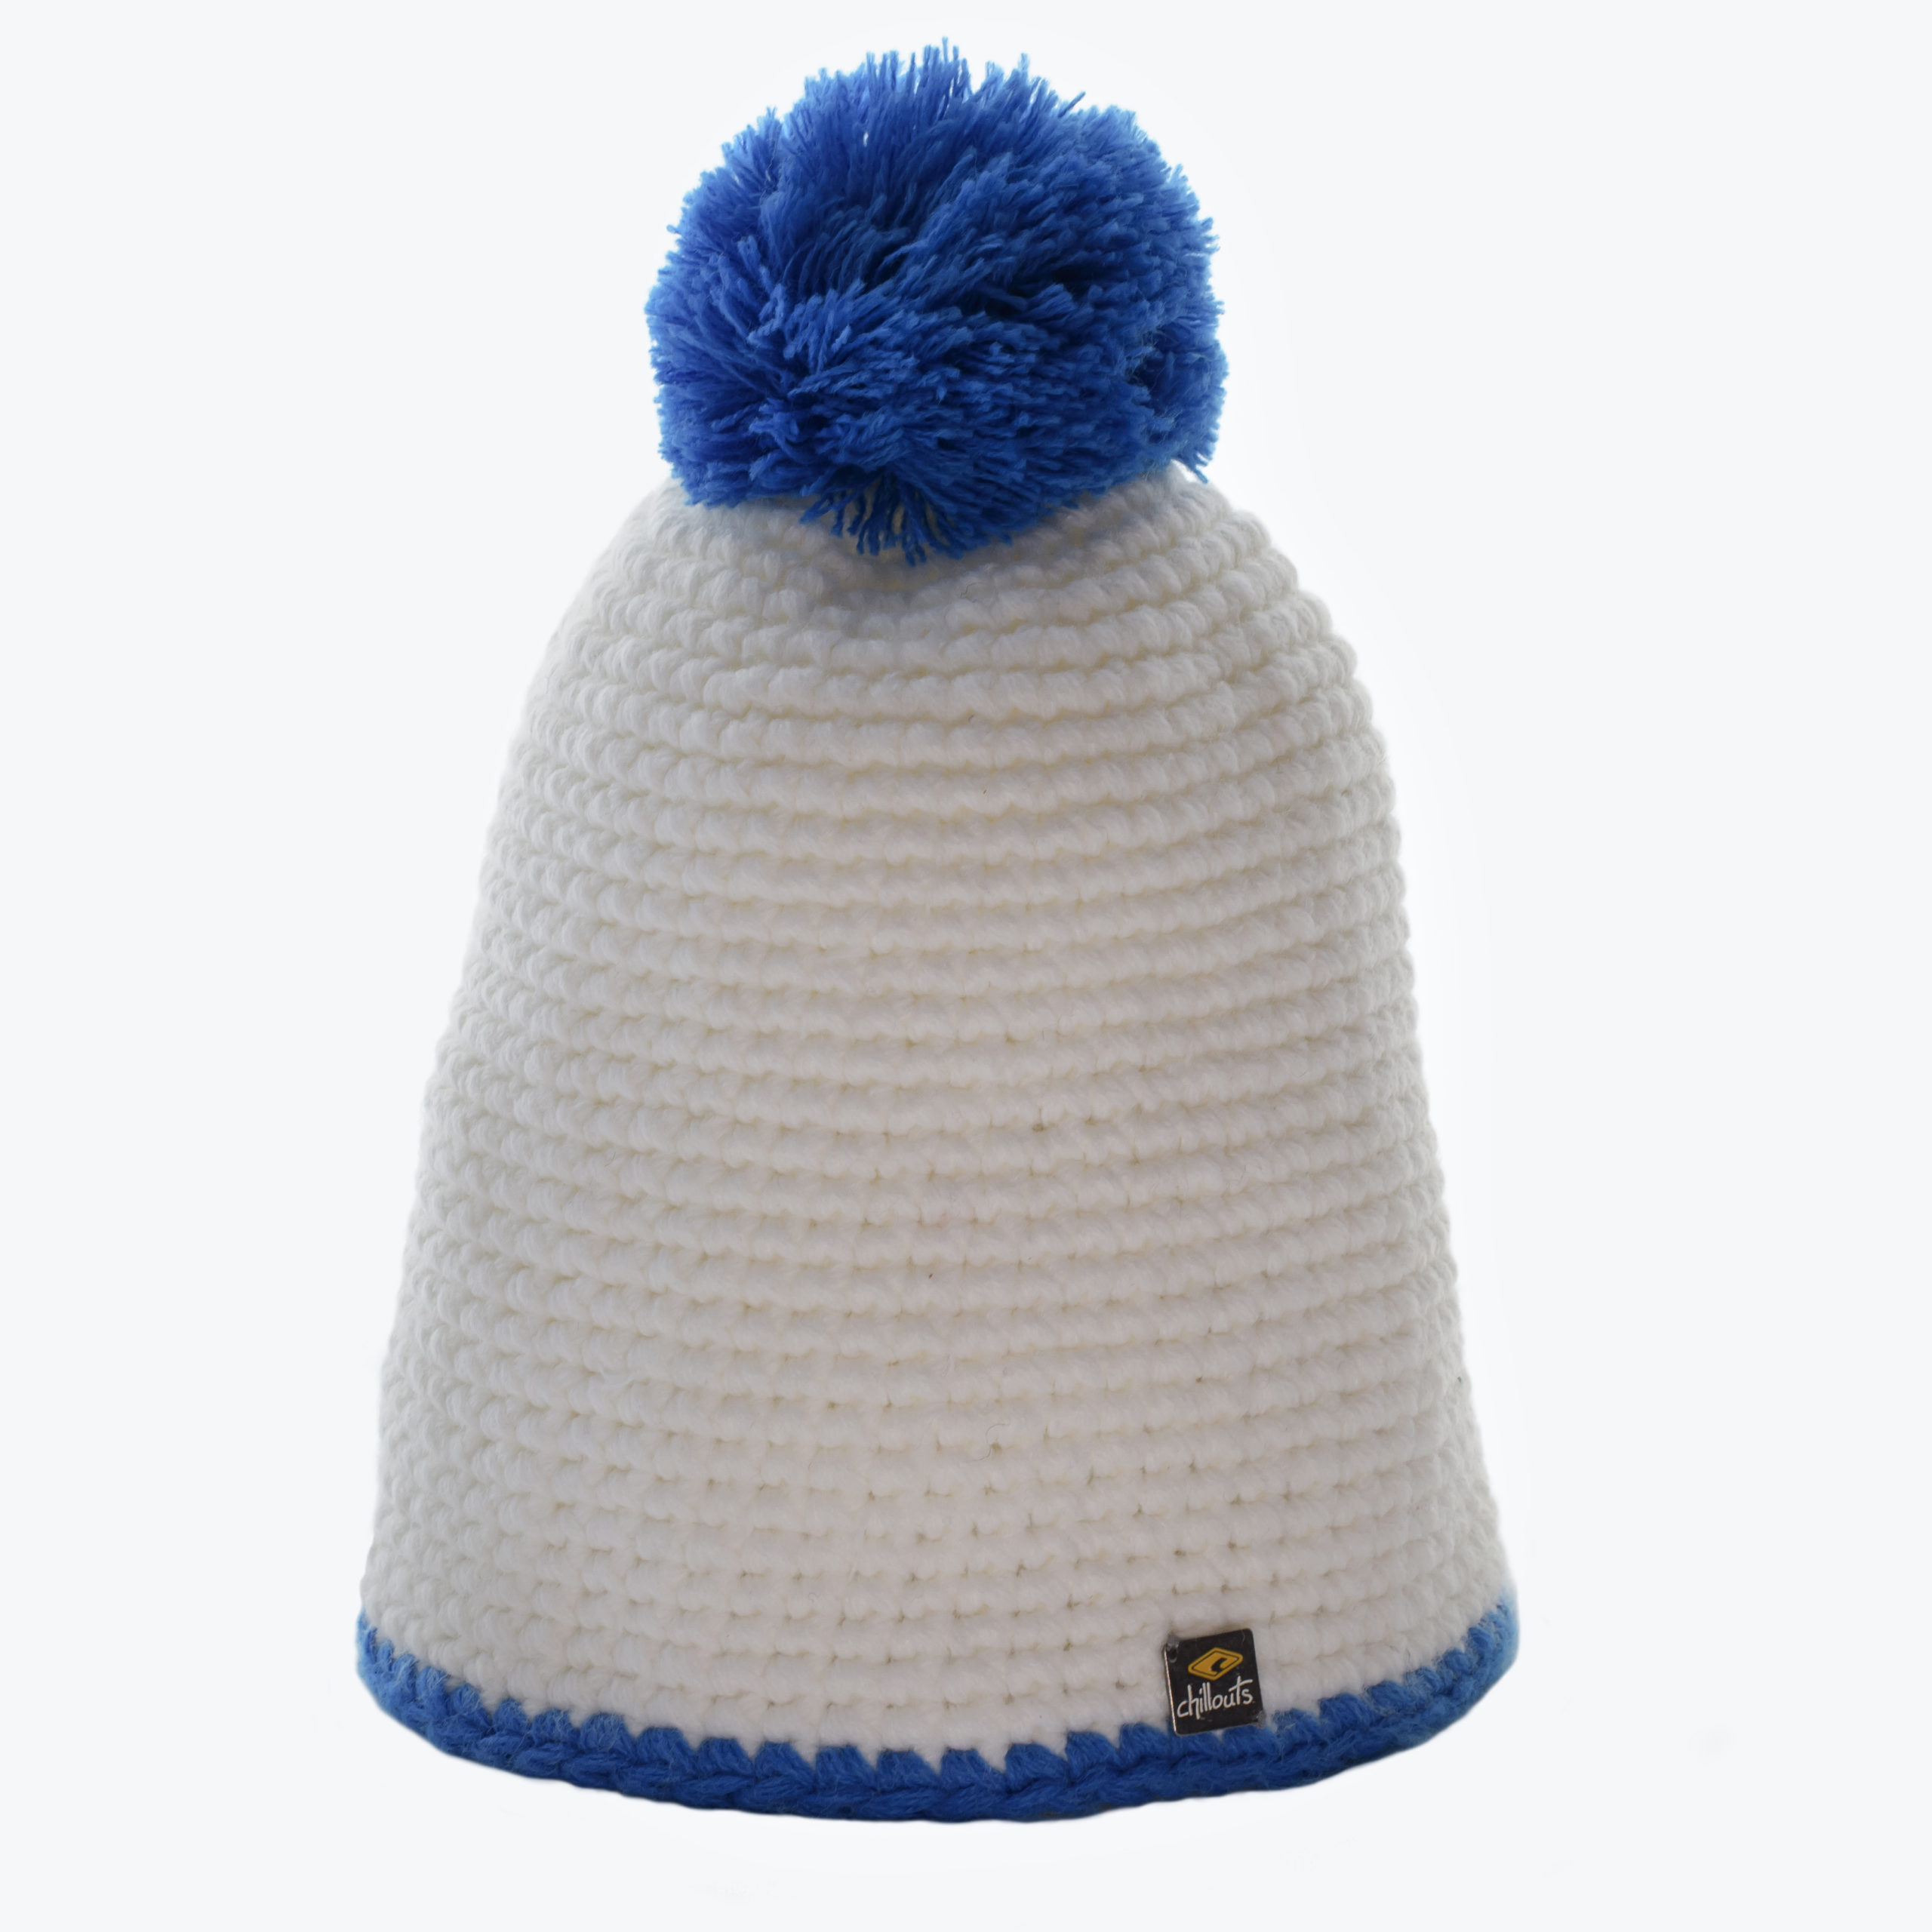 CHILLOUTS KID'S KNITTED BEANIE -WHITE